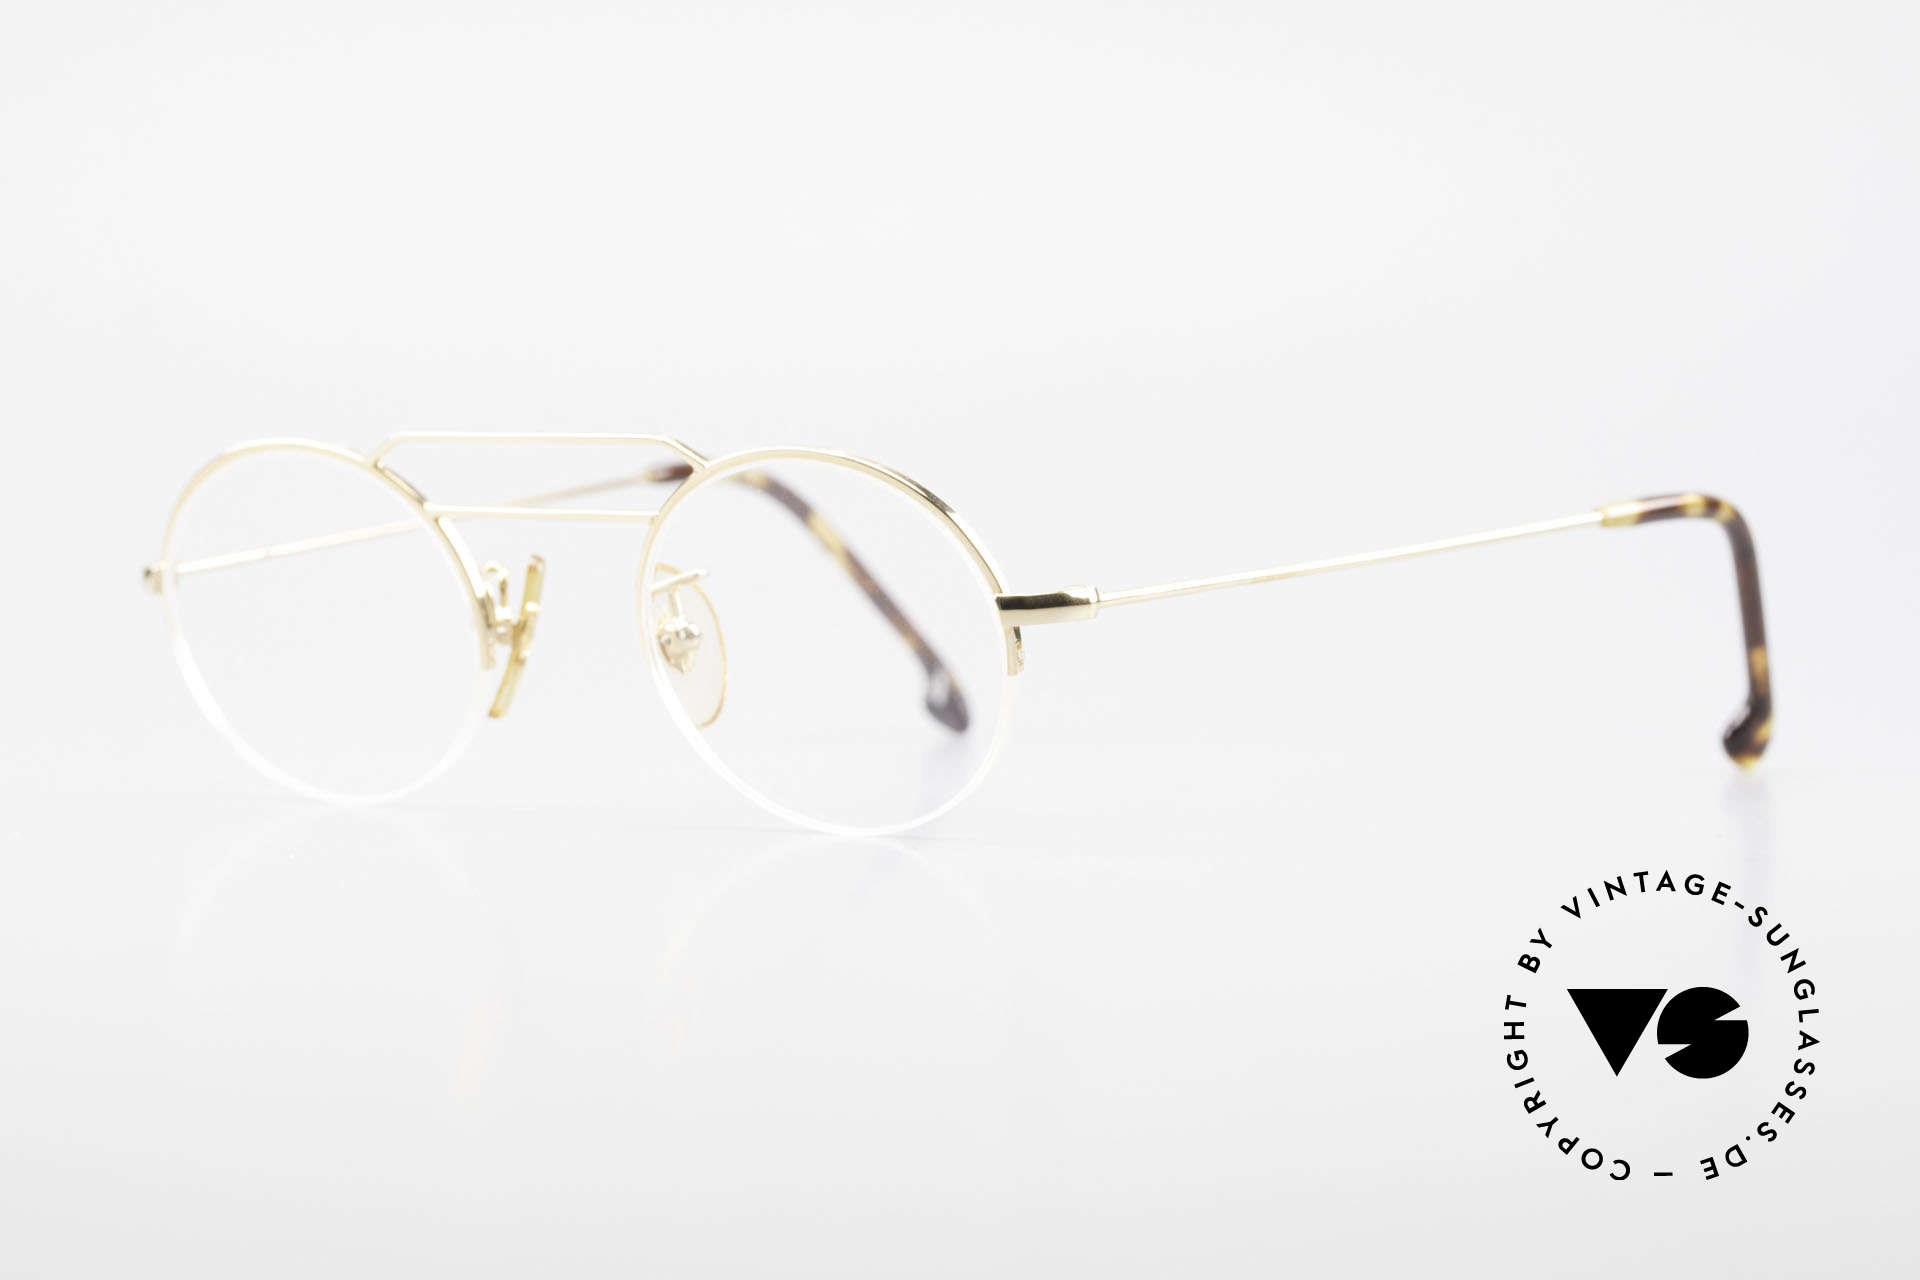 W Proksch's M5/7 90's Semi Rimless Gold-Plated, plain frame design & Japanese striving for quality, Made for Men and Women